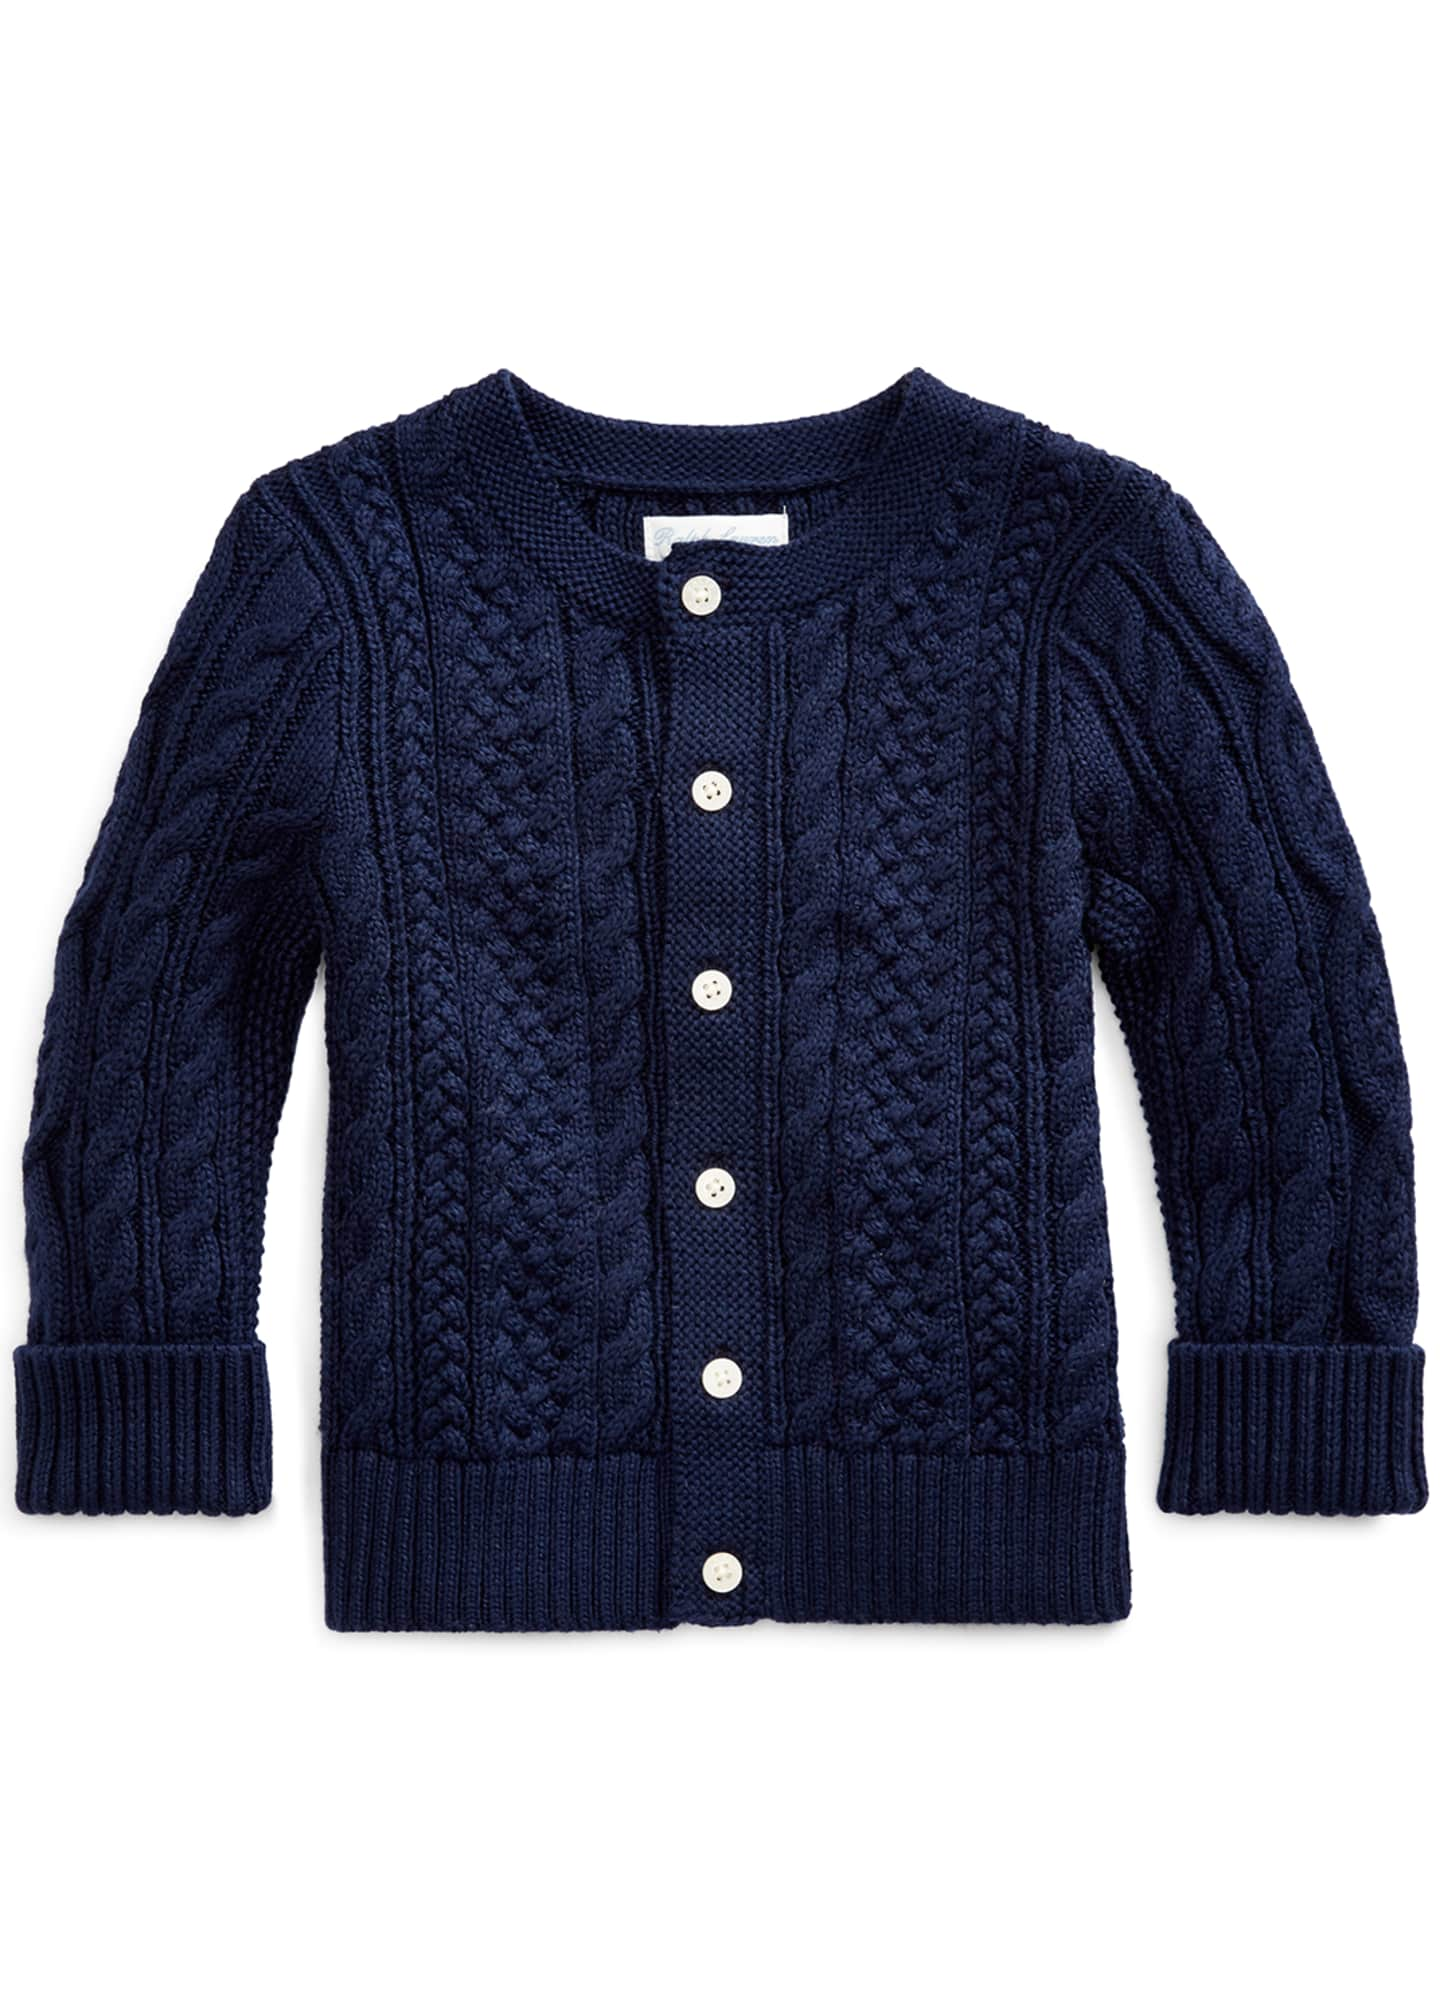 Ralph Lauren Childrenswear Cotton Cable-Knit Cardigan, 6-24